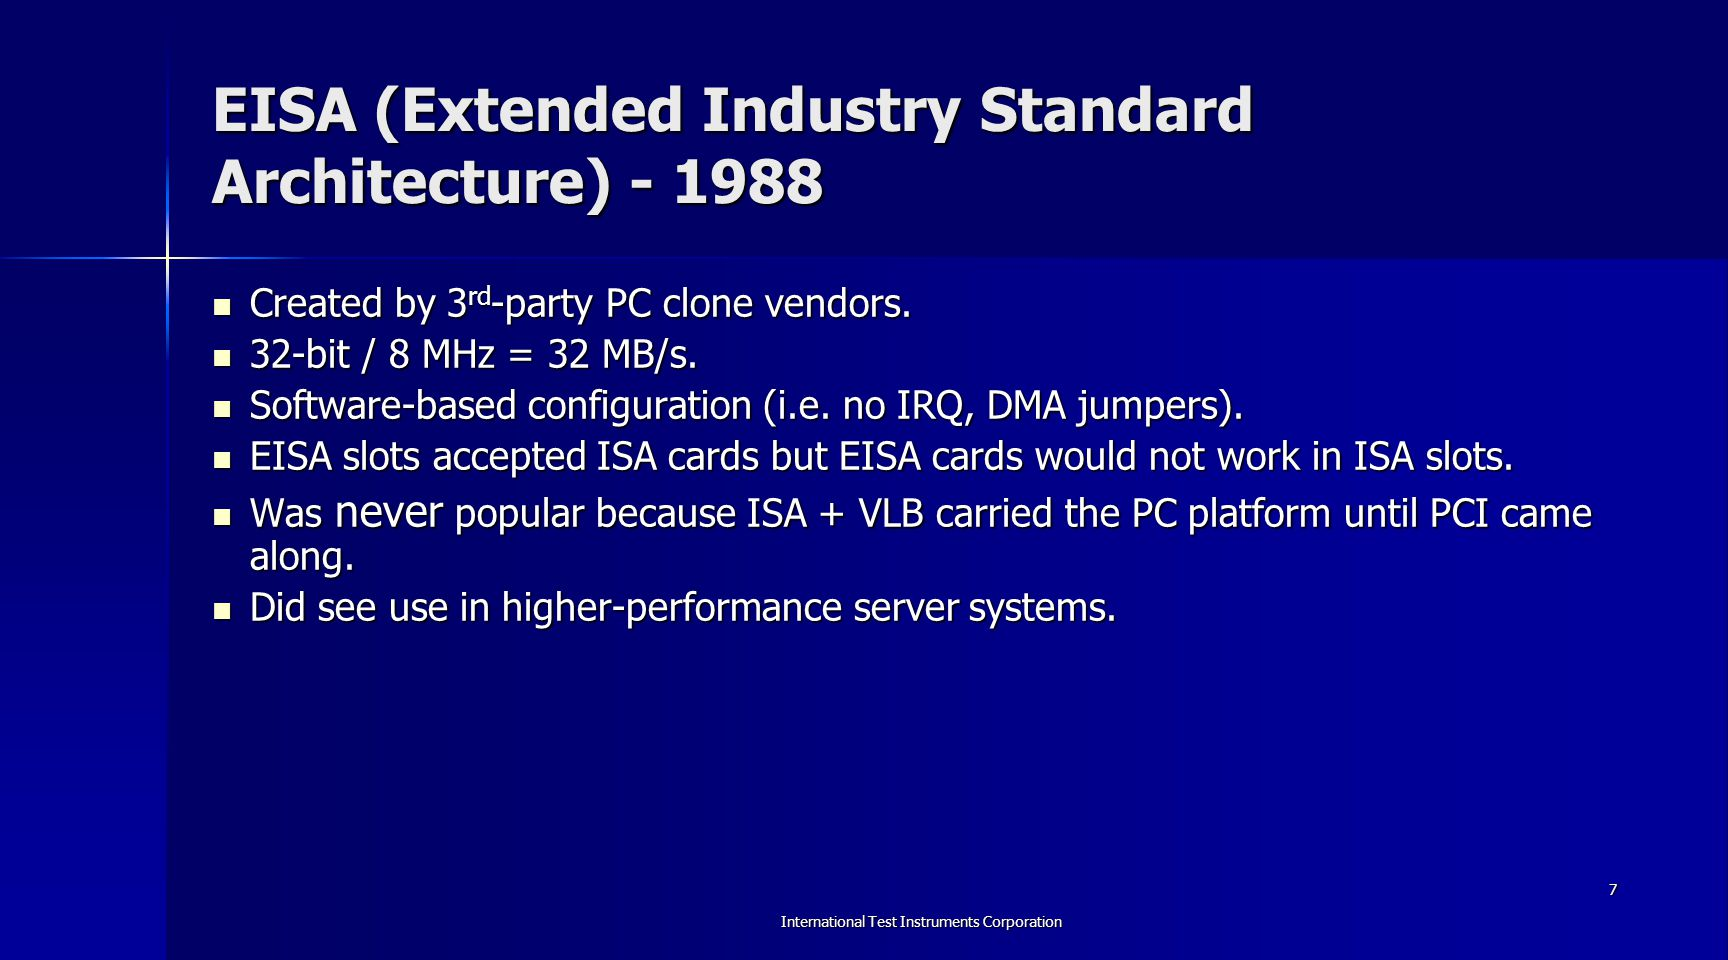 EISA (Extended Industry Standard Architecture) - 1988